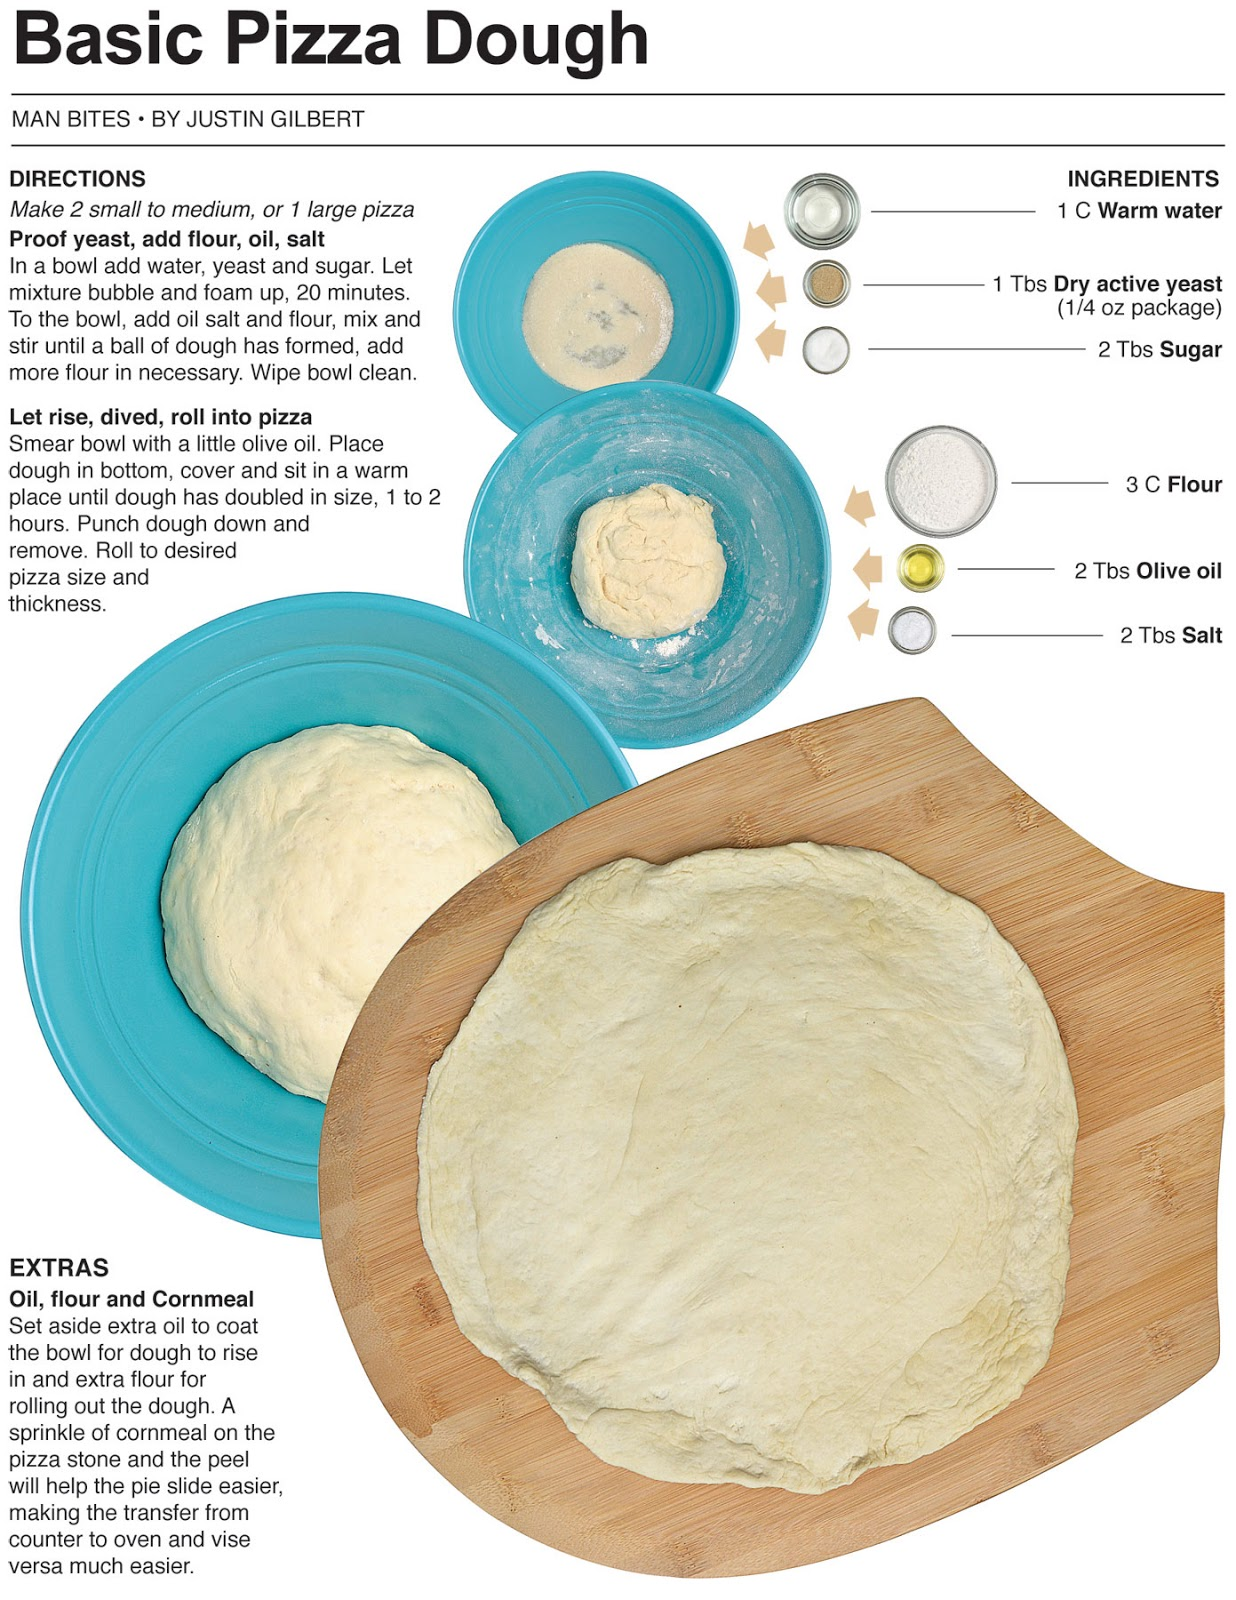 Behind the Bites: Basic Pizza Dough